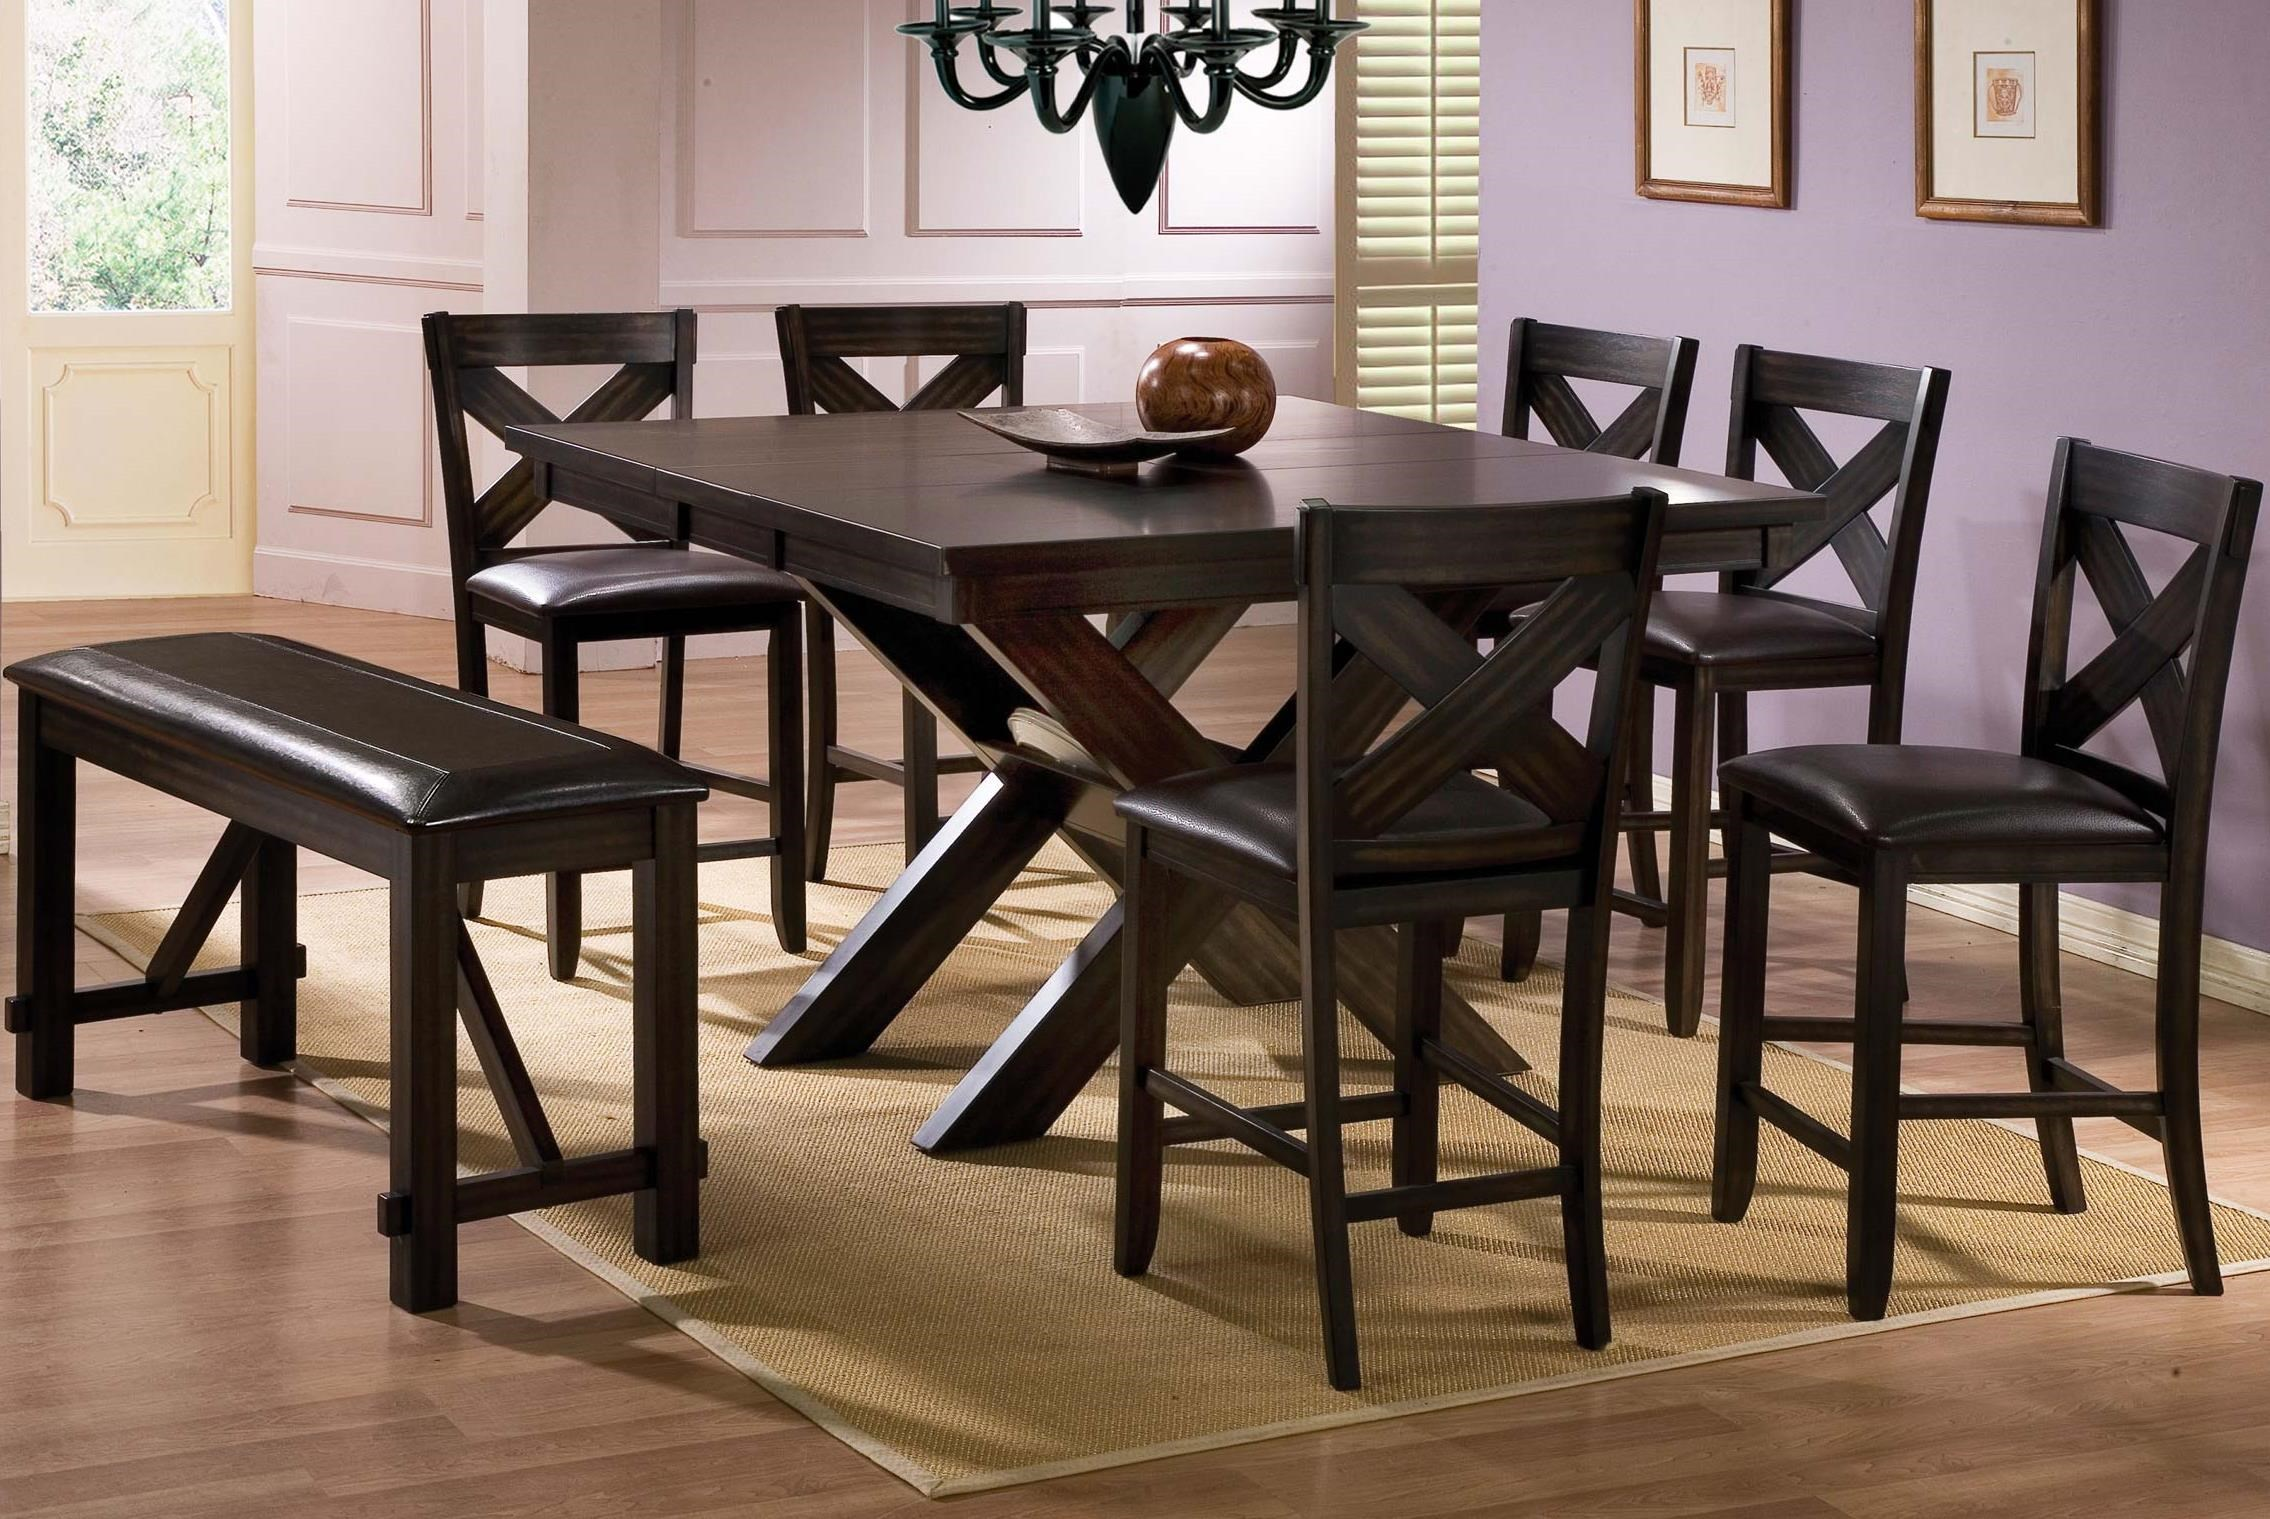 Incroyable Edgewater 8 Piece Counter Height Dining Set With Bench By Winners Only